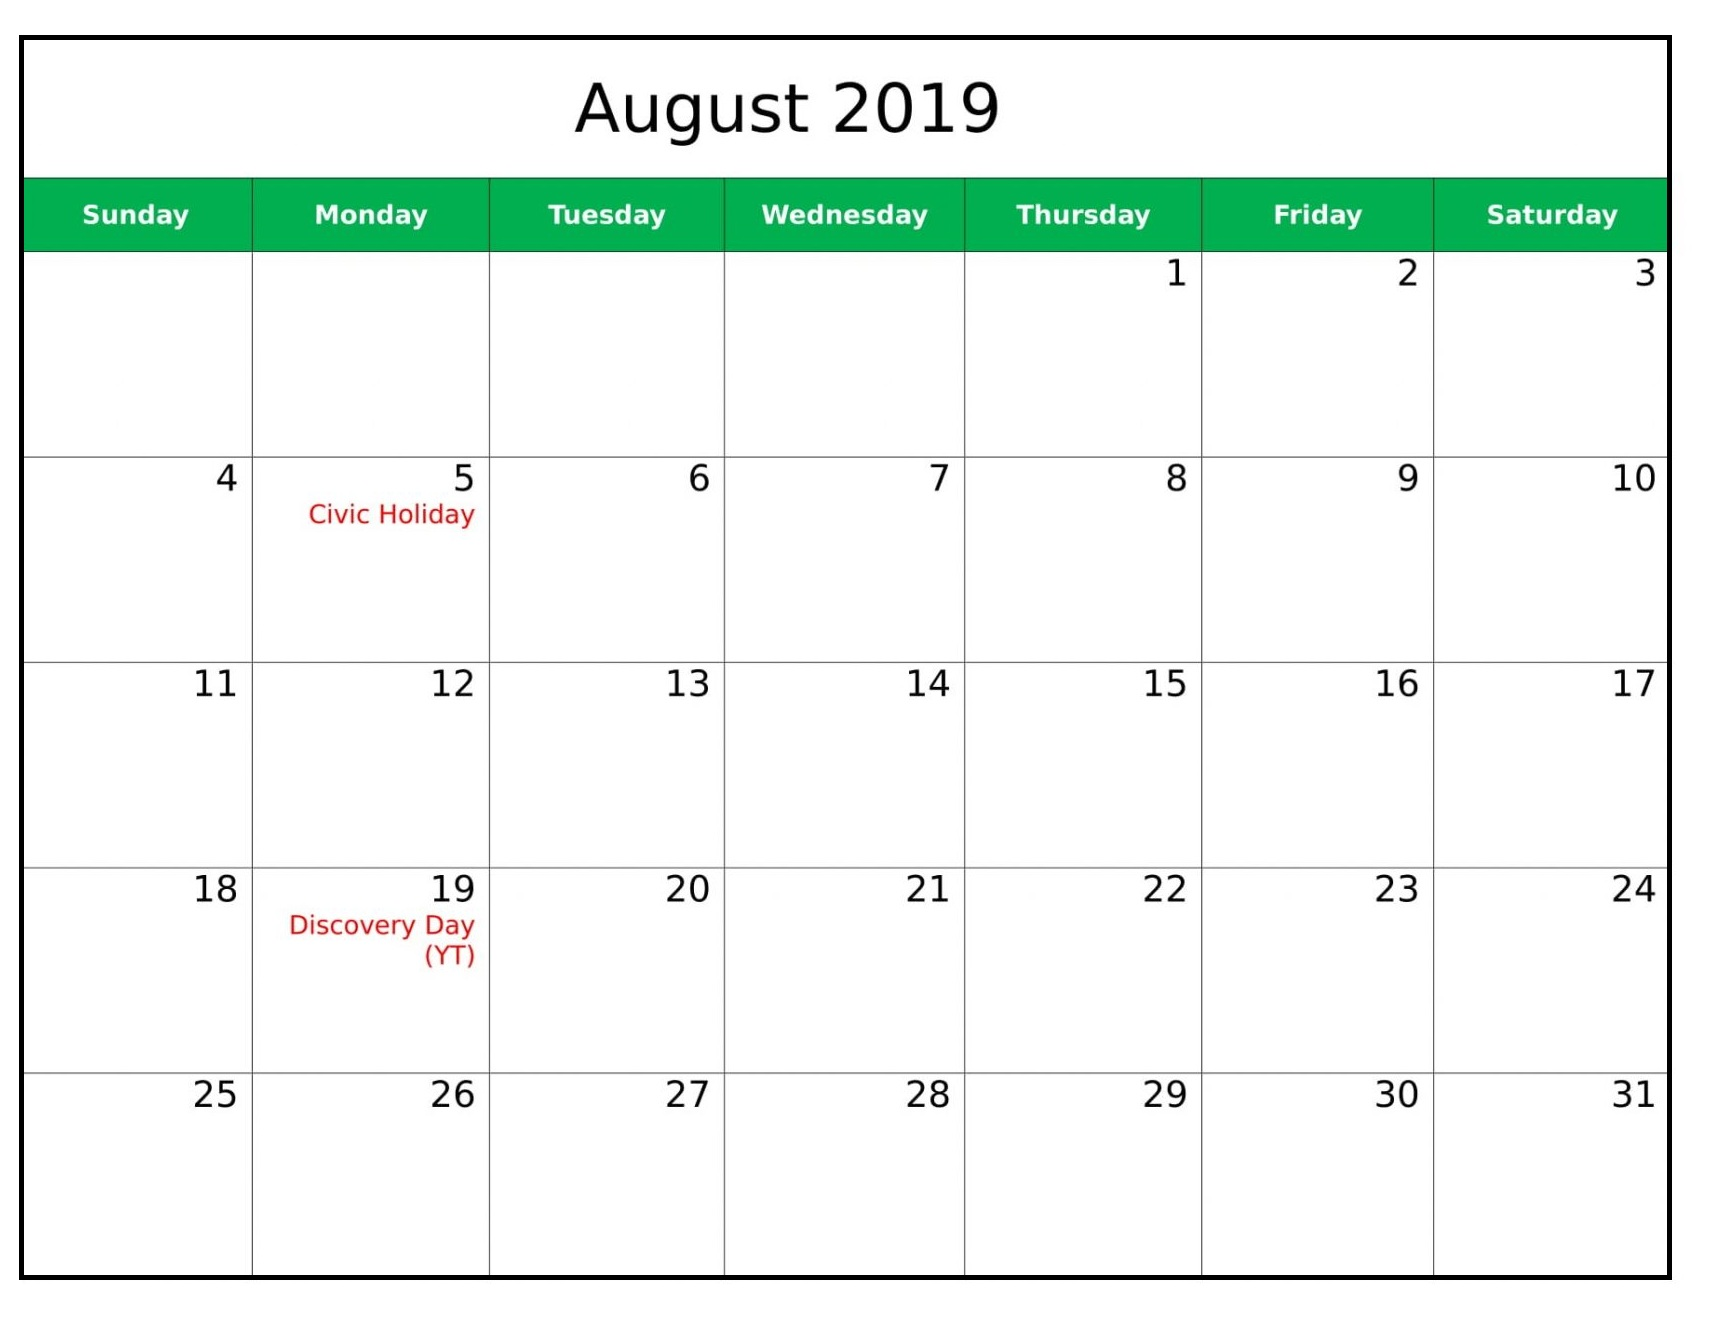 August 2019 Calendar With Holidays.August 2019 Calendar With Holidays Uk Free Printable Calendar